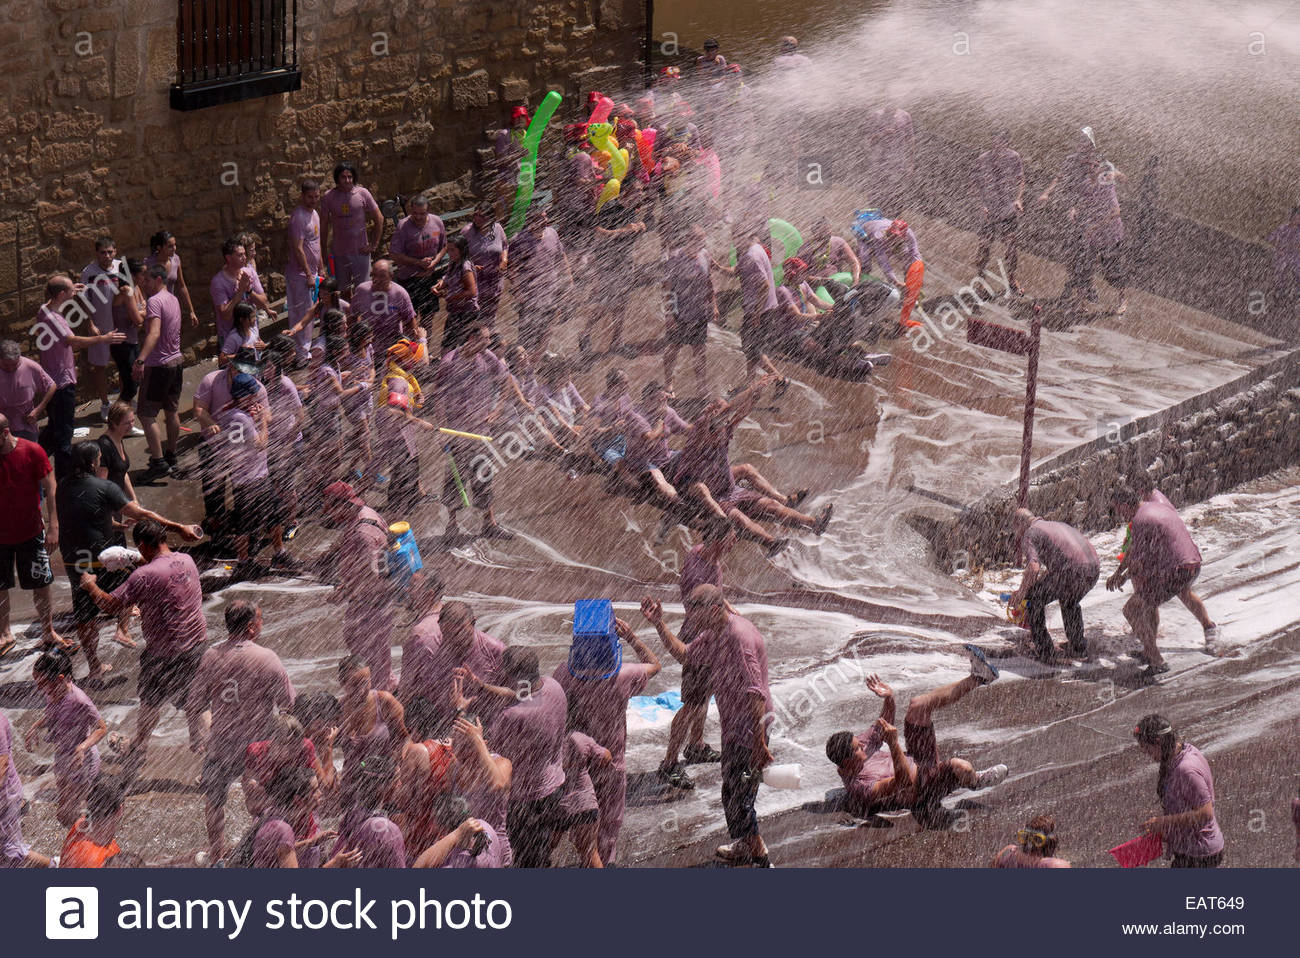 People participating in the Battle of Wine Festival in San Asensio, Spain. Stock Photo